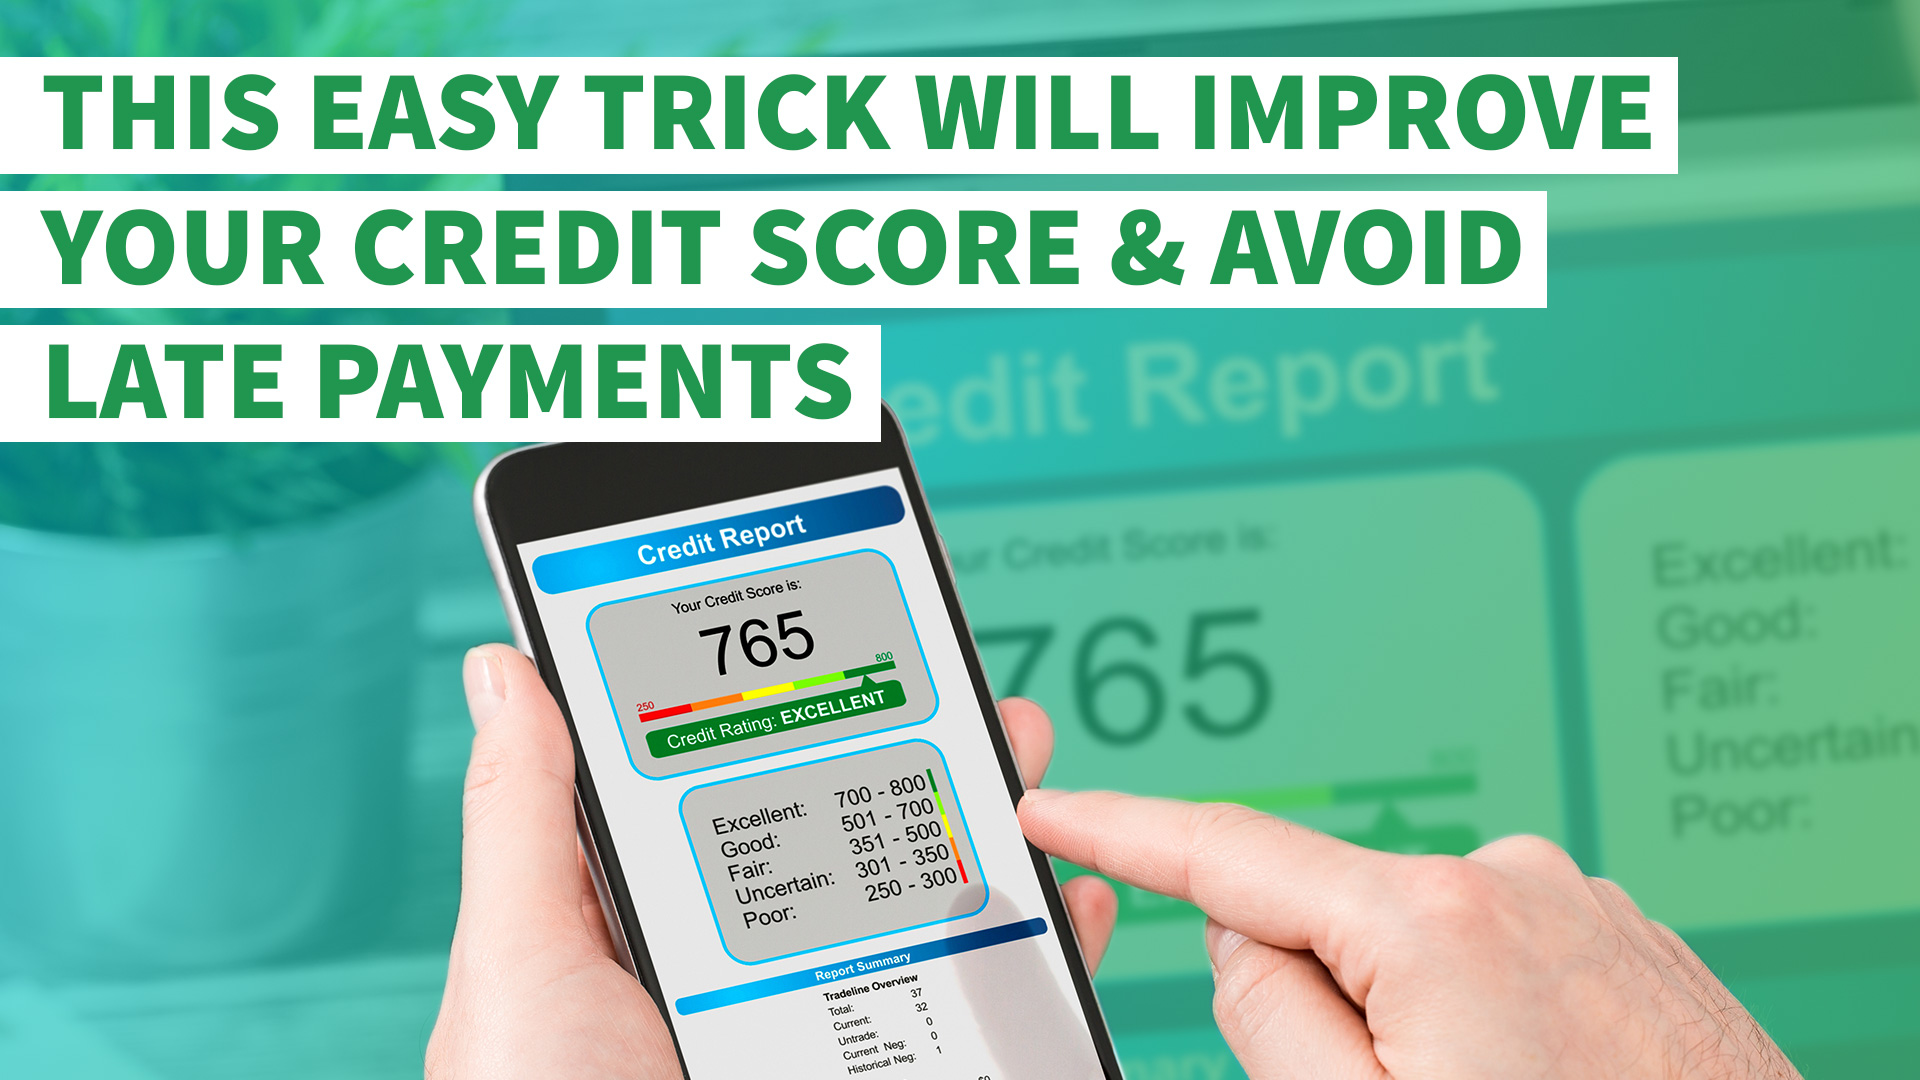 This Easy Trick Will Improve Your Credit Score And Avoid